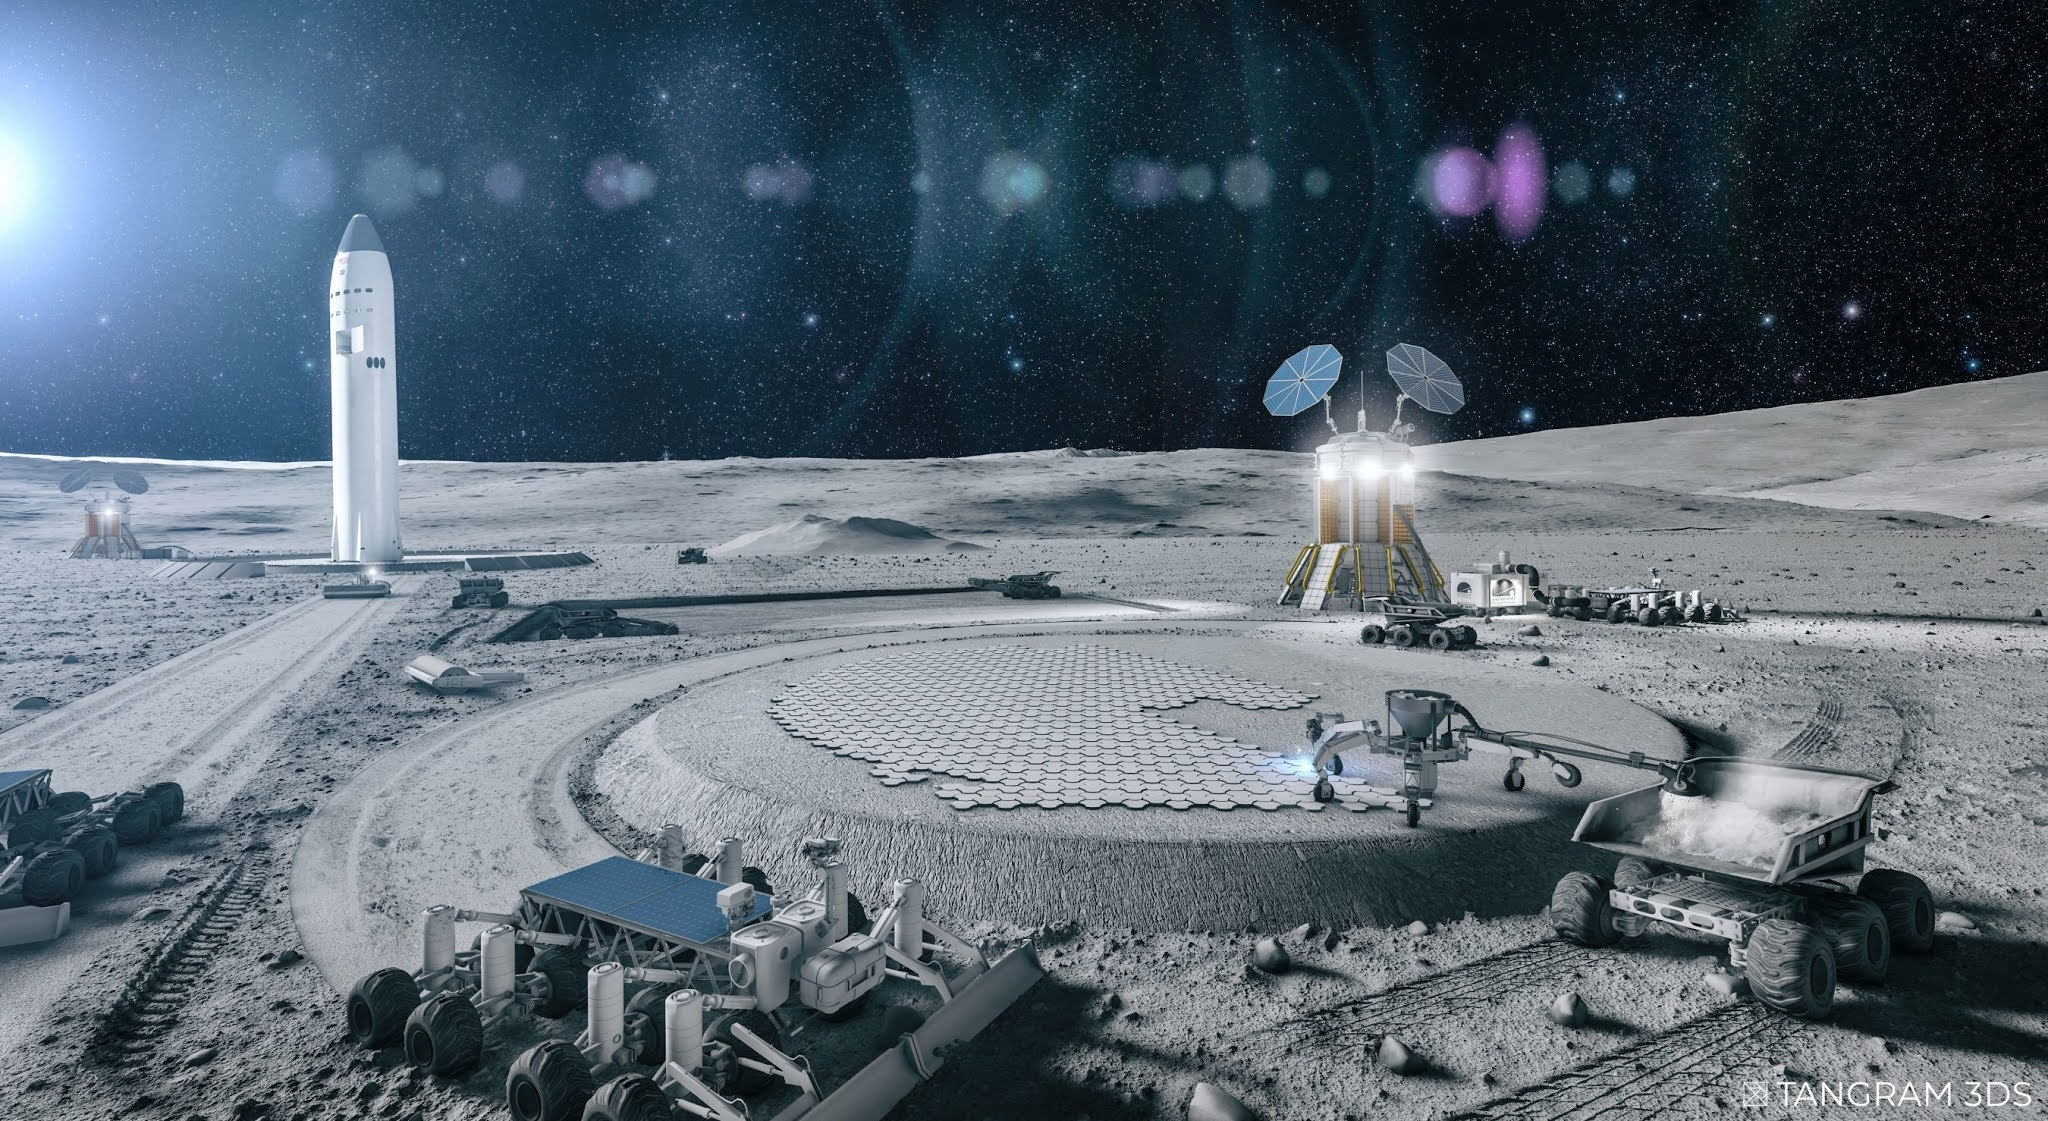 Astroport Space Technologies, awarded a NASA Technology Research contract for lunar construction